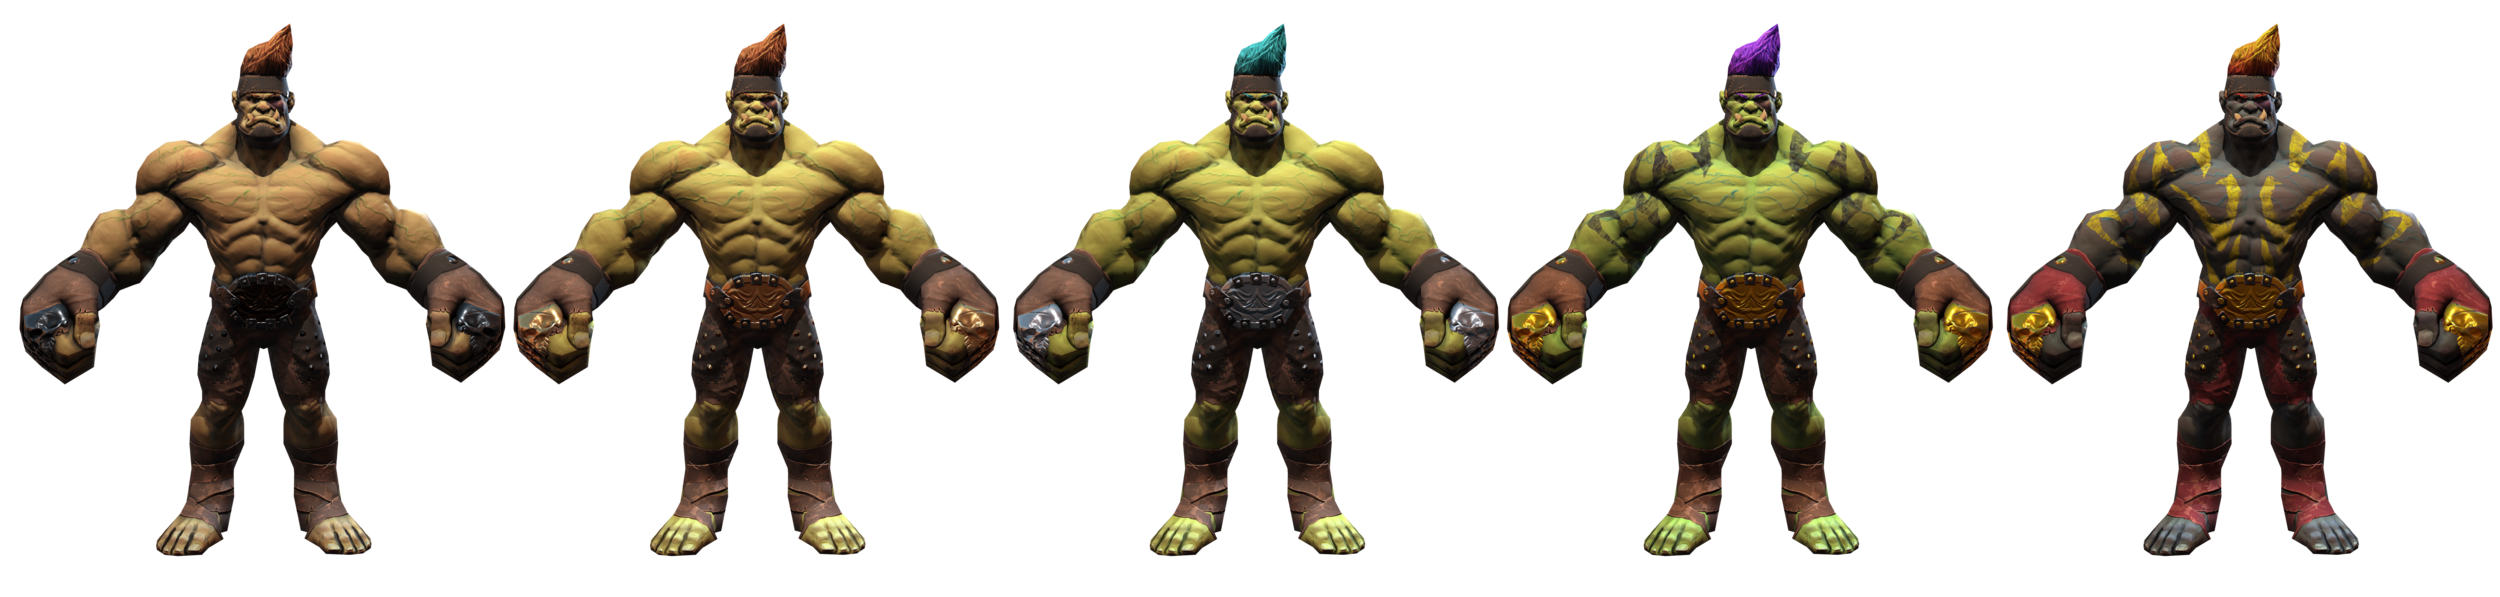 ORC_Defence_Brawler_LowLevels_01.png